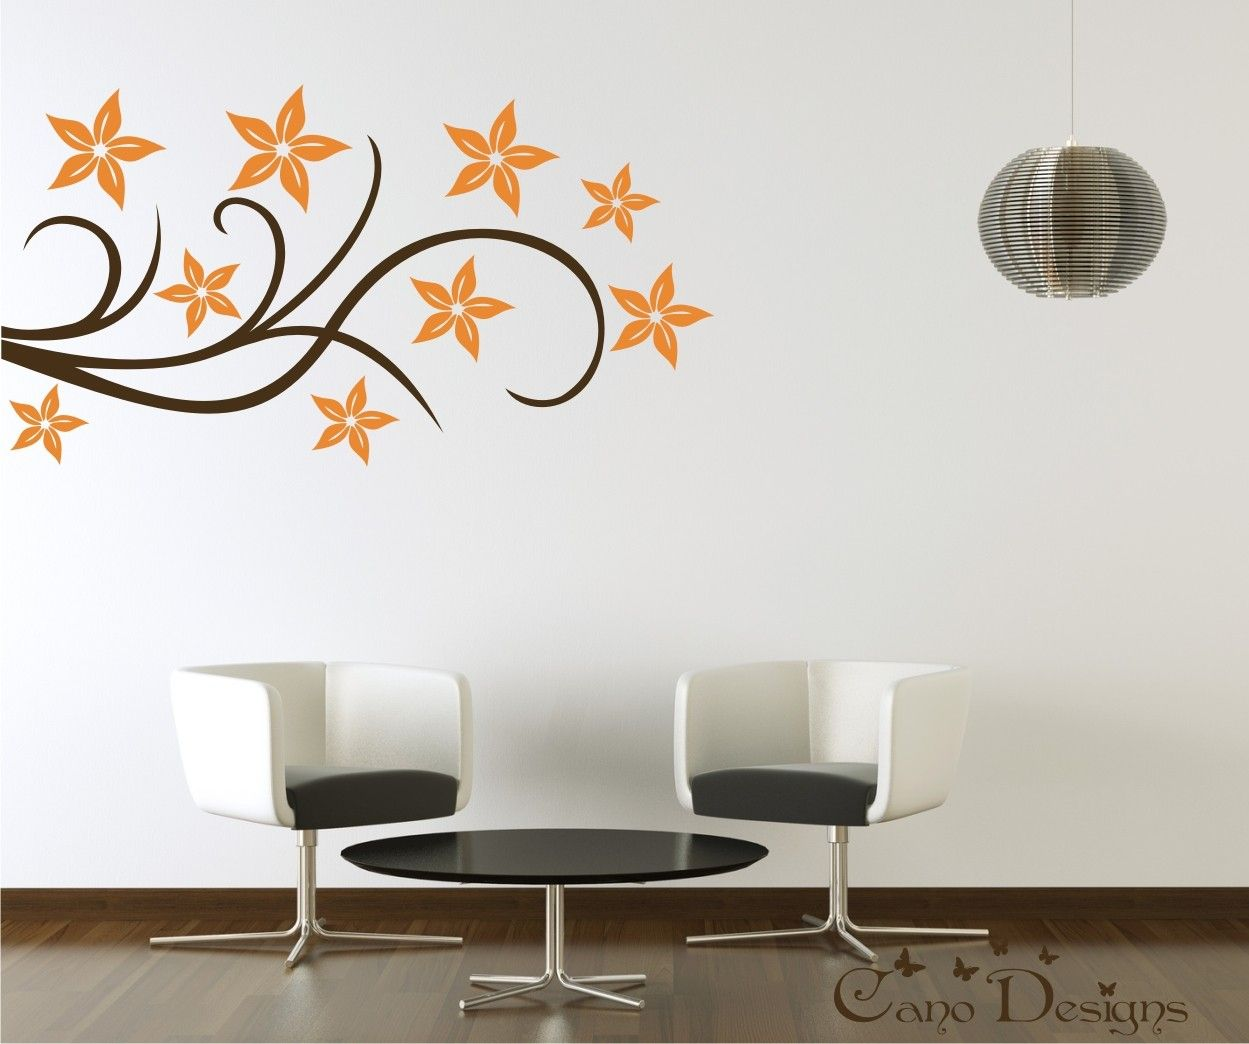 Image Detail For Floral Design Vinyl Decal Wall Decals Stickers